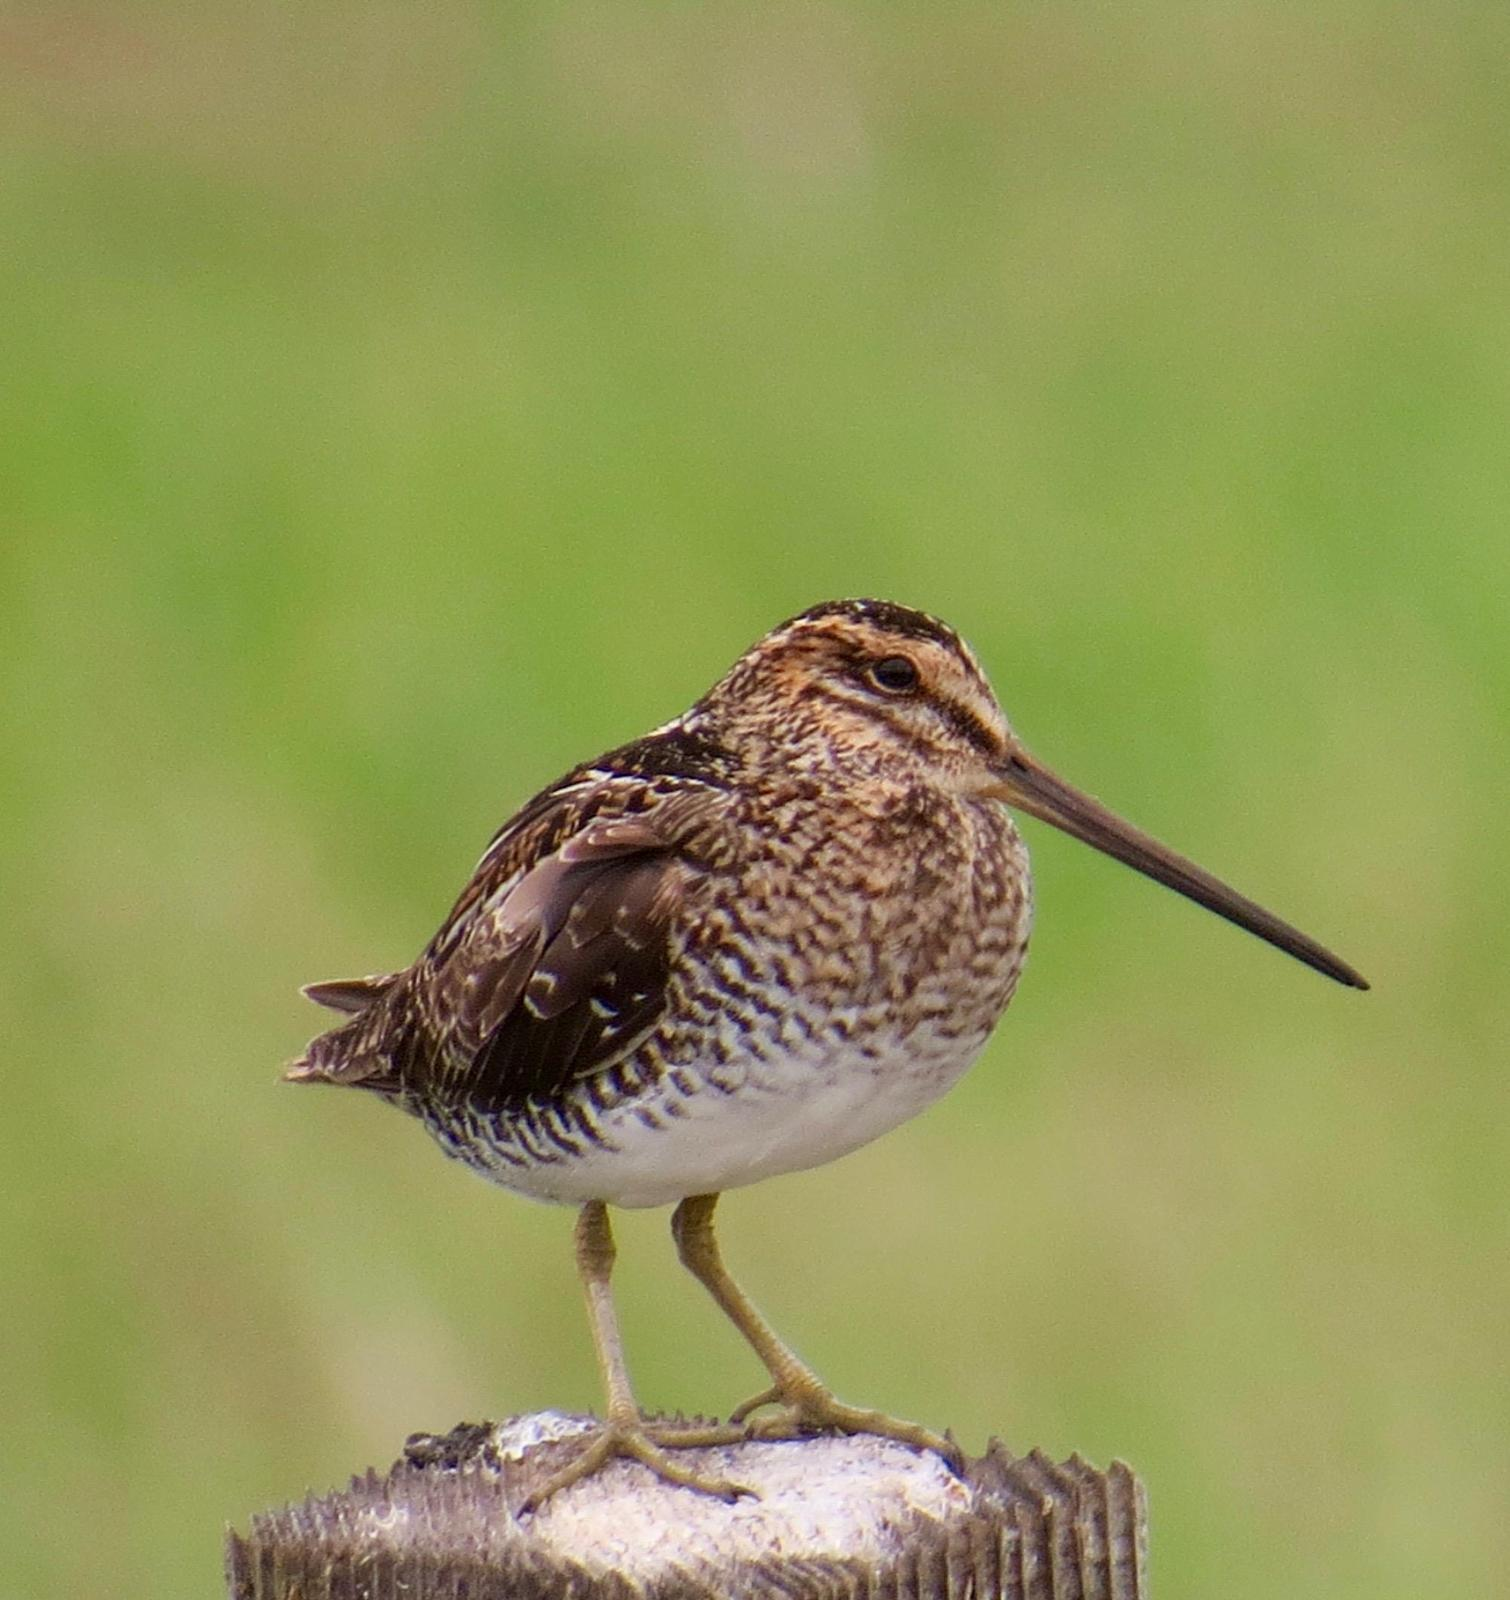 Wilson's Snipe Photo by Don Glasco